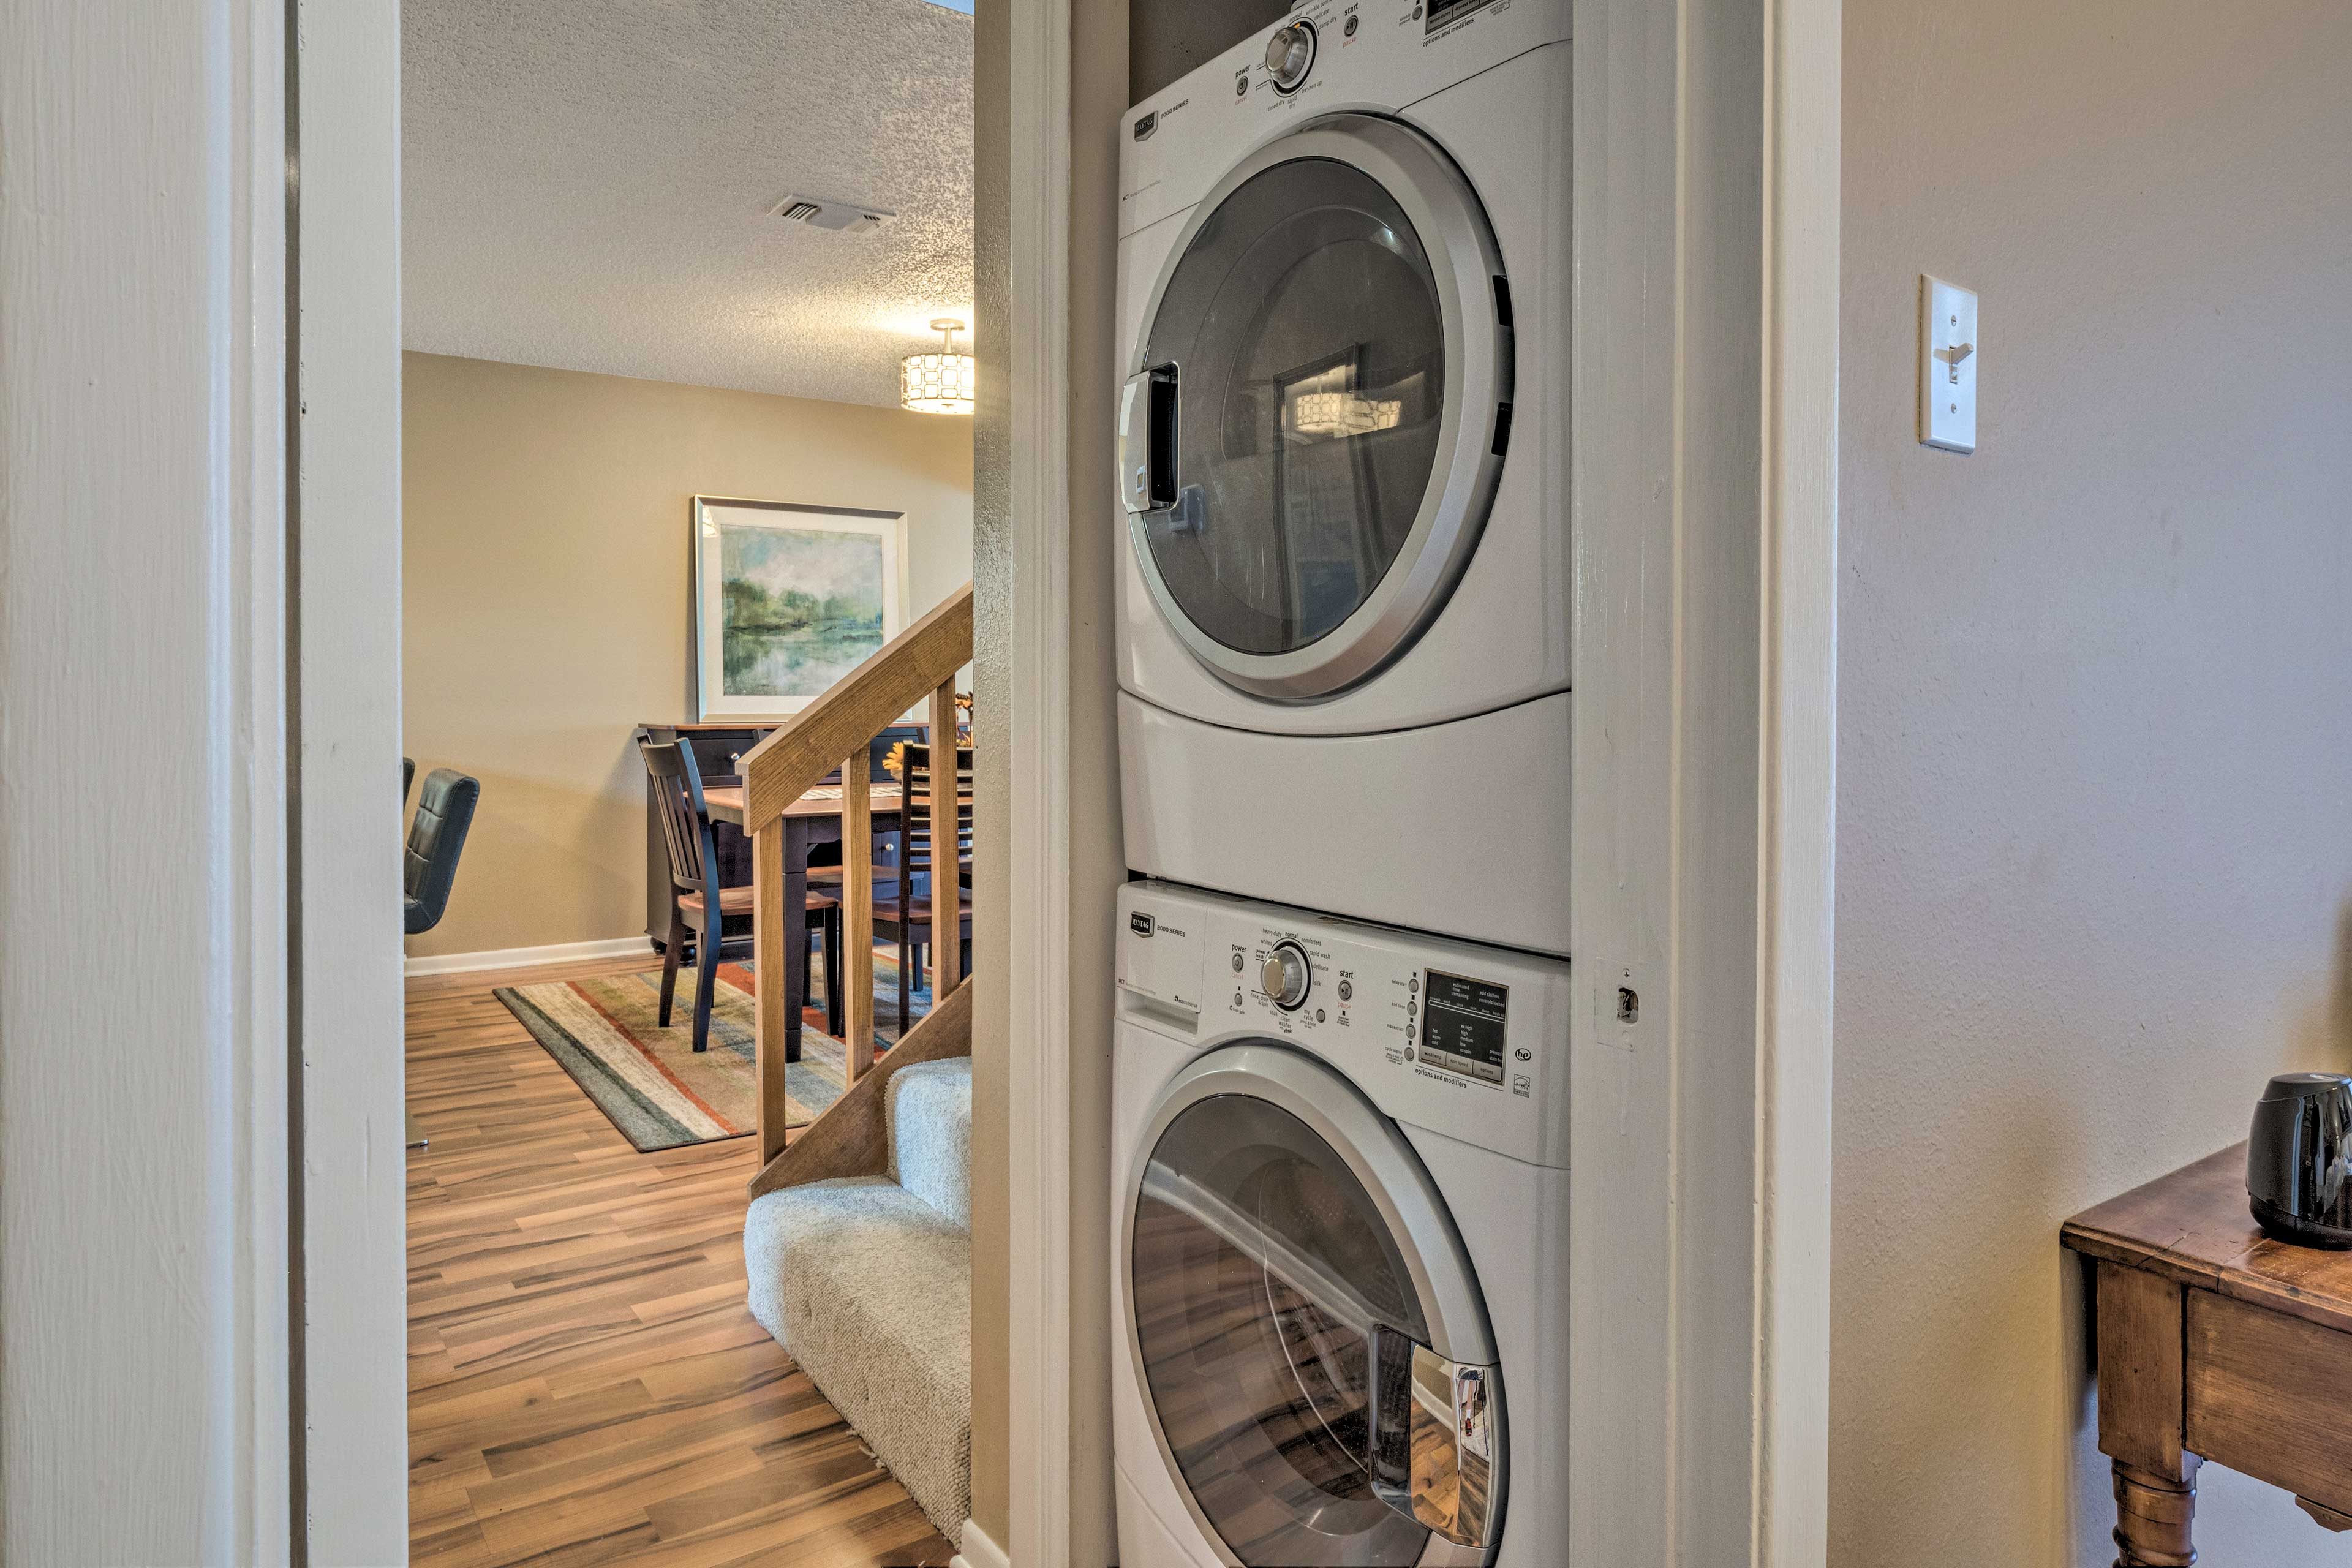 Toss in a load of laundry while you're out for the day.